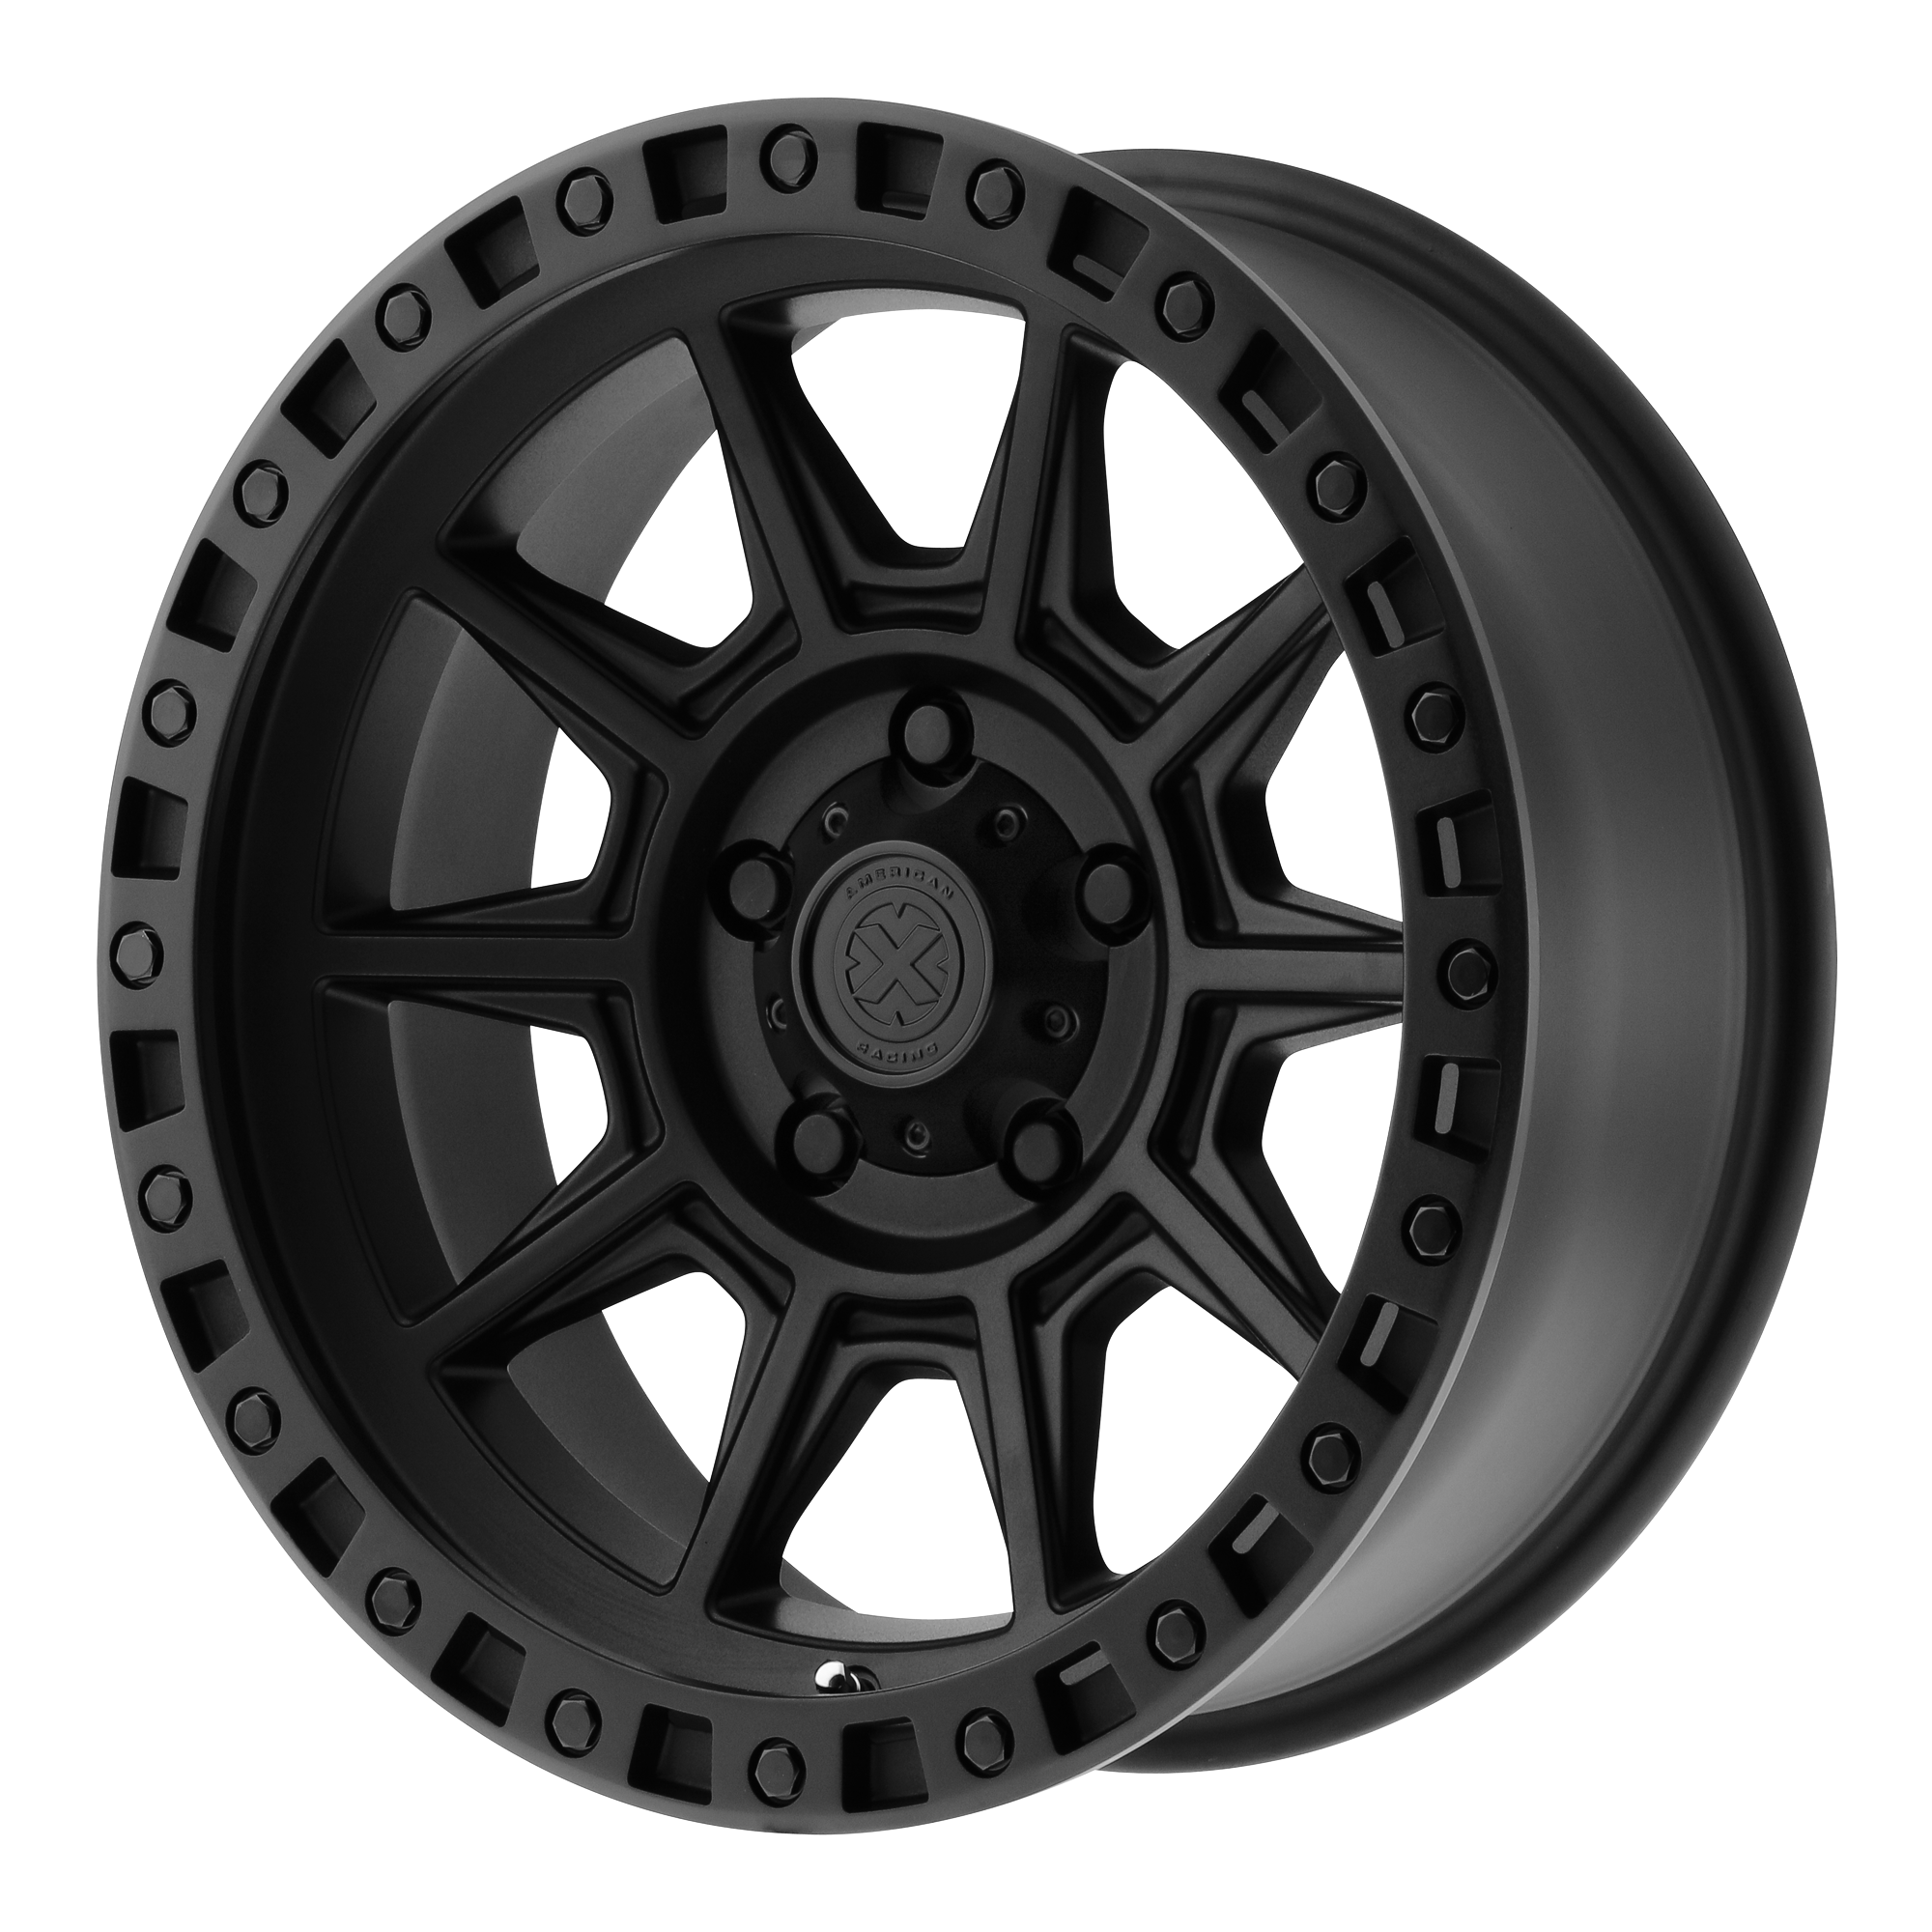 ATX Series Offroad Wheels AX202 Cast Iron Black